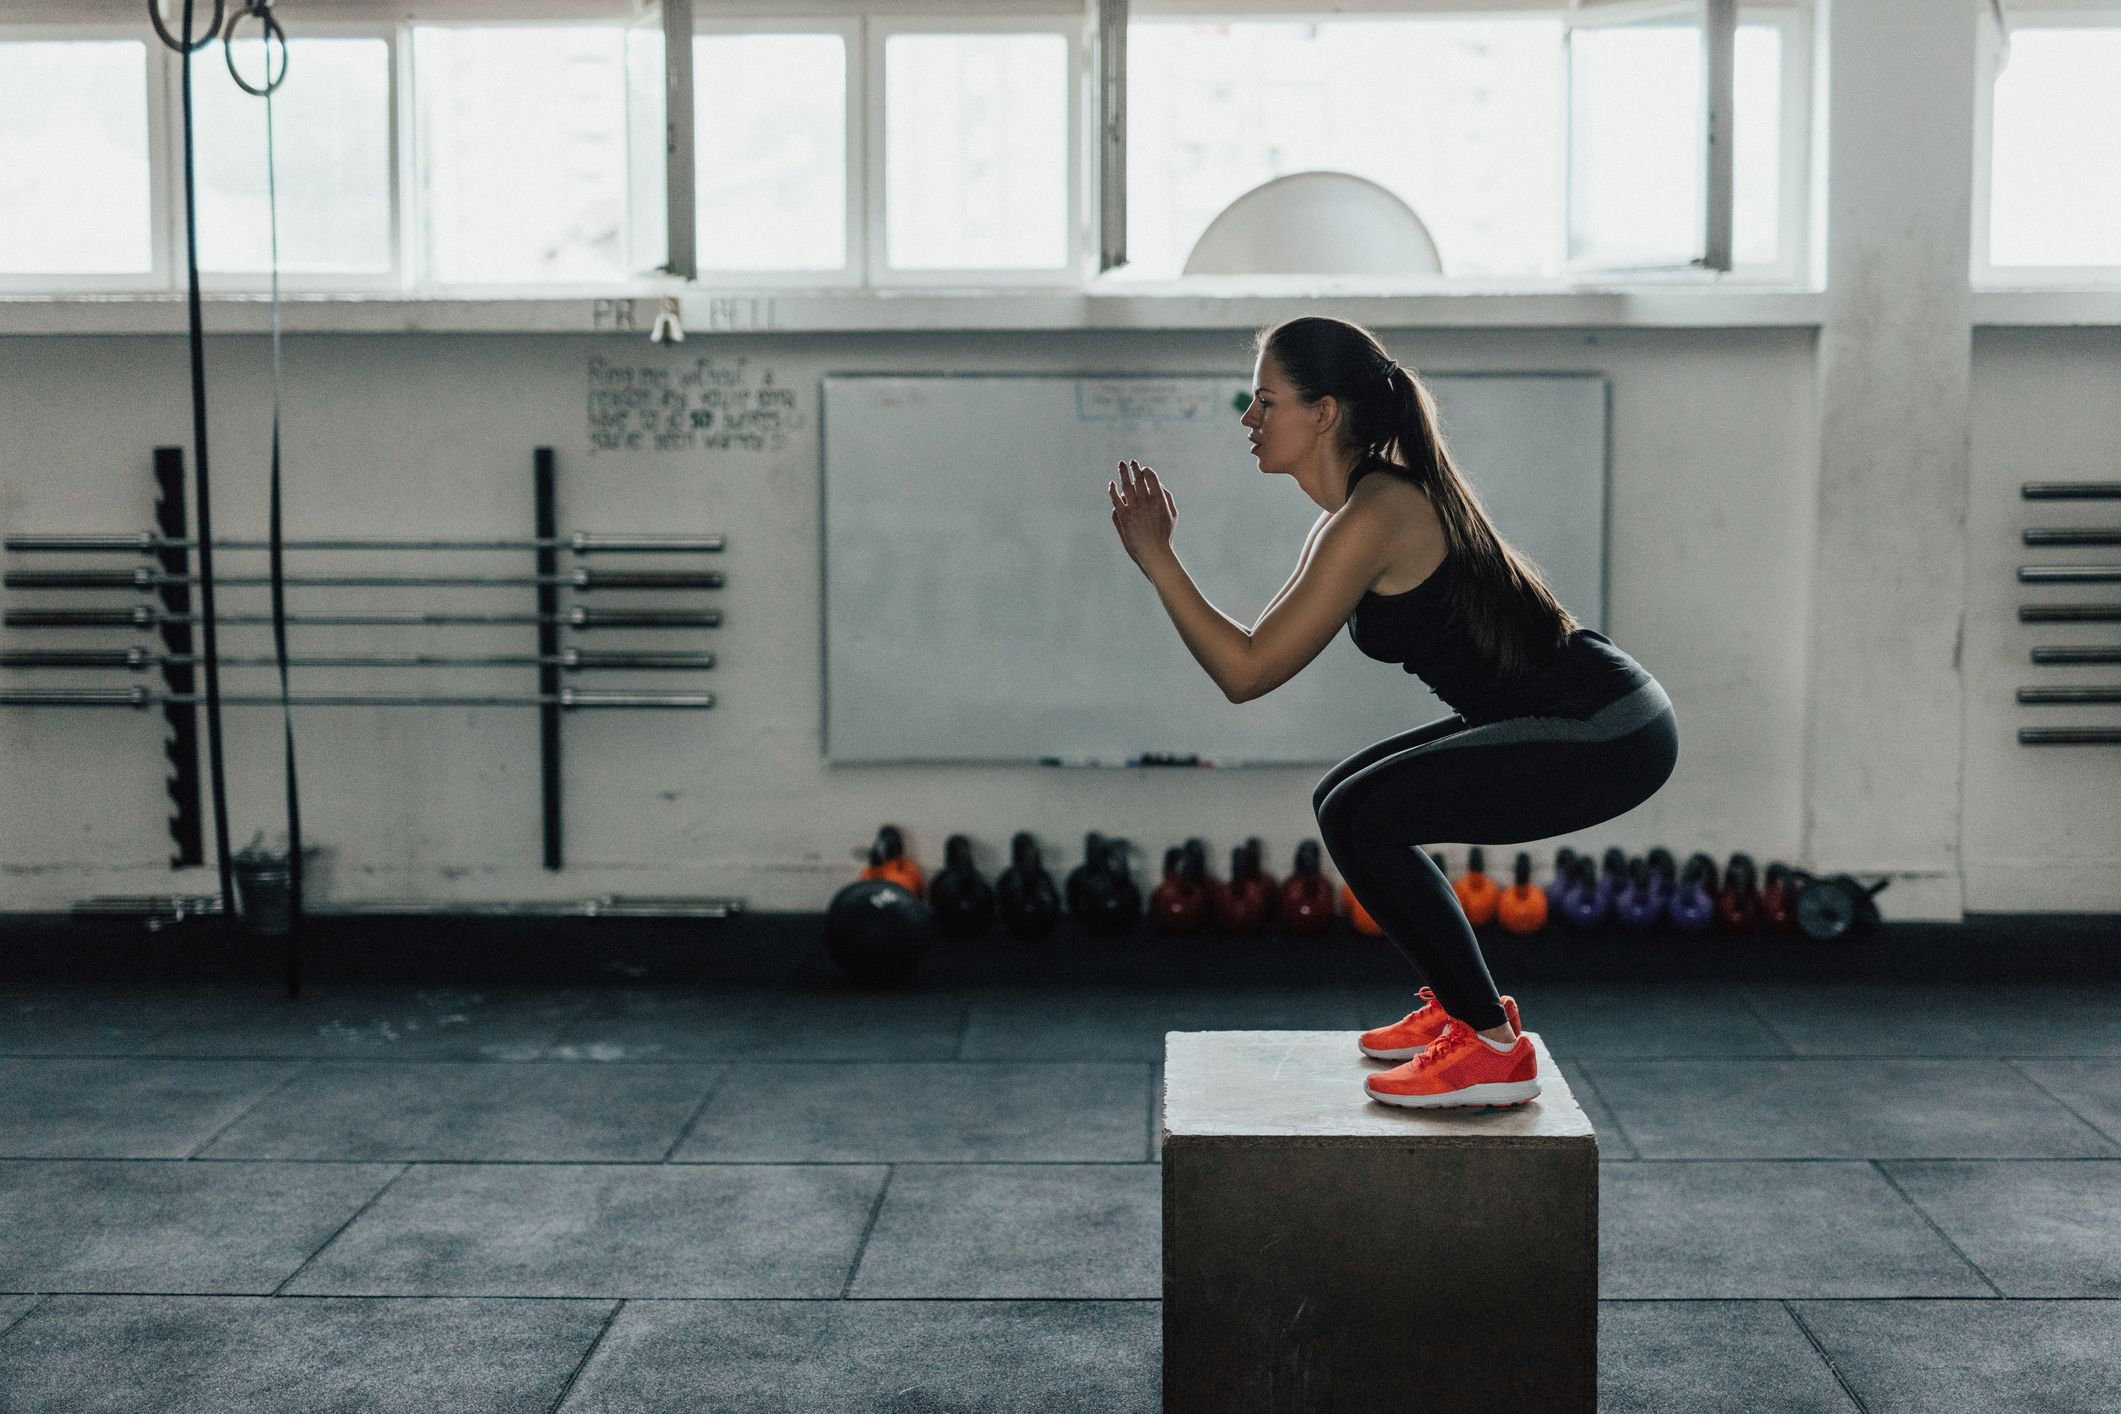 The Best Compound Exercises to Make Your Workout More Efficient